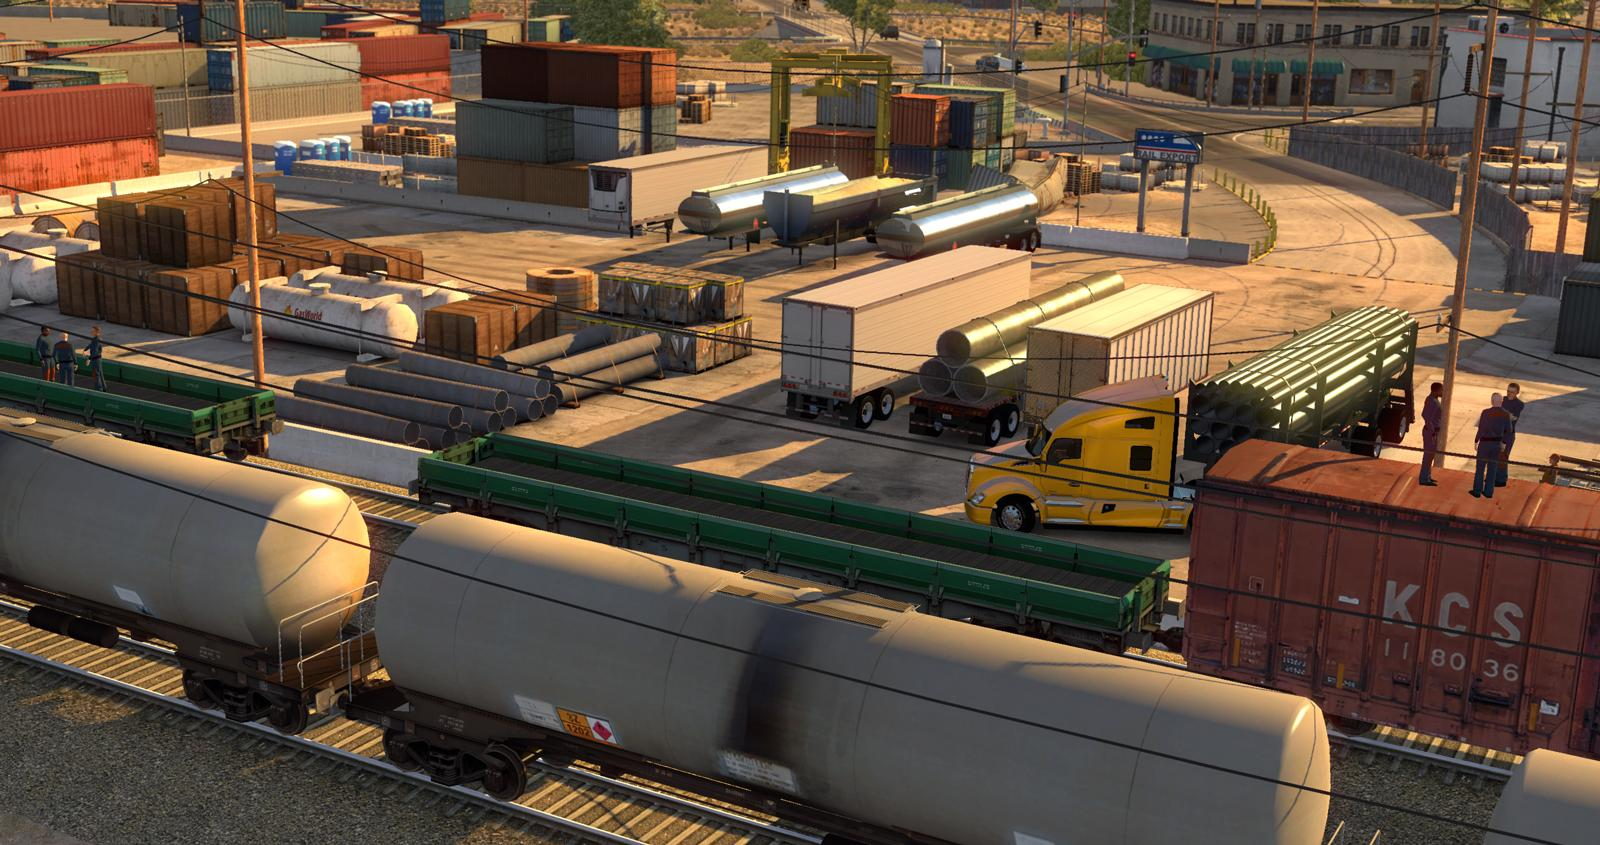 1 14 UPDATE NEWS AND ACROSS THE DESERT IN ATS GAME (2)